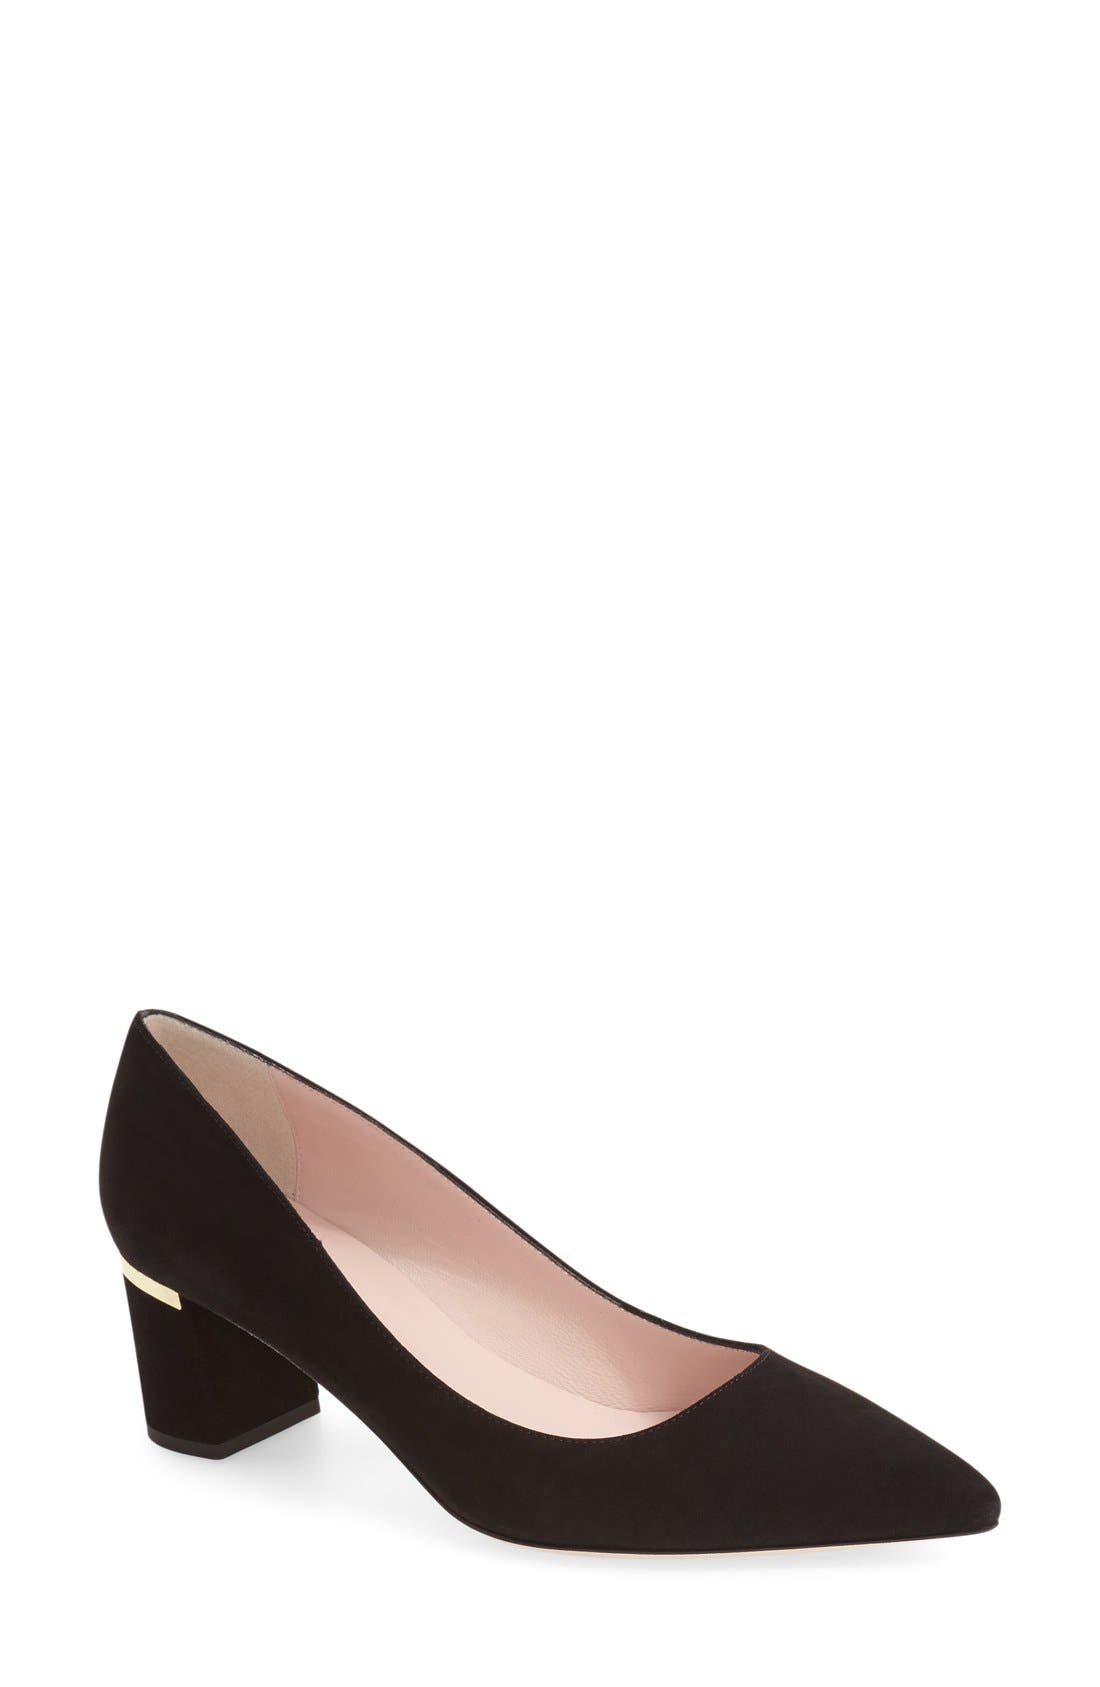 Alternate Image 1 Selected - kate spade new york 'milan too' pointy toe pump (Women)